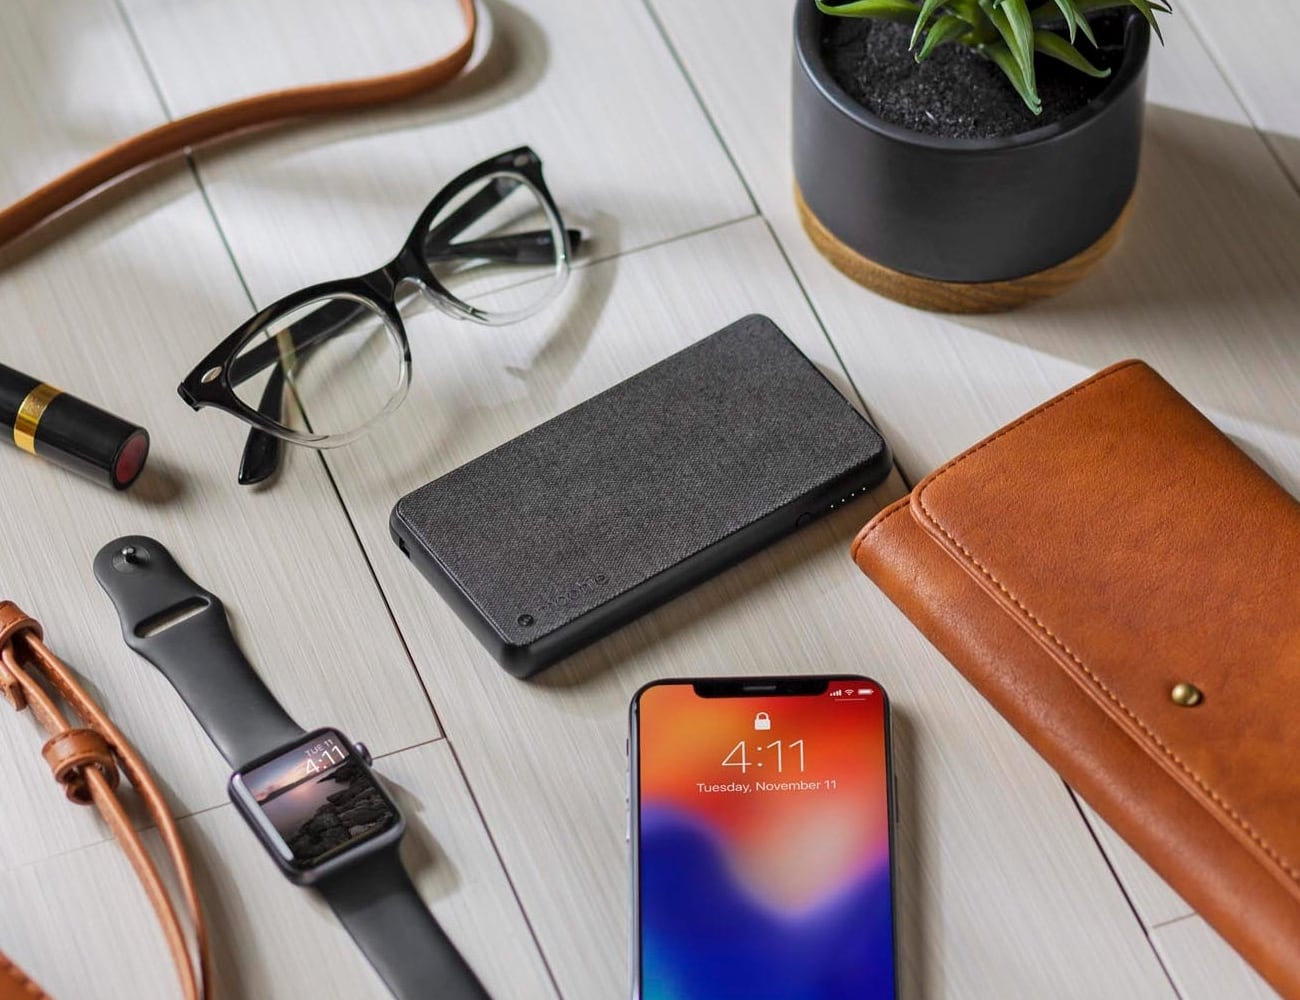 mophie powerstation plus with Lightning connector Power Bank provides 6,040 mAh of battery power